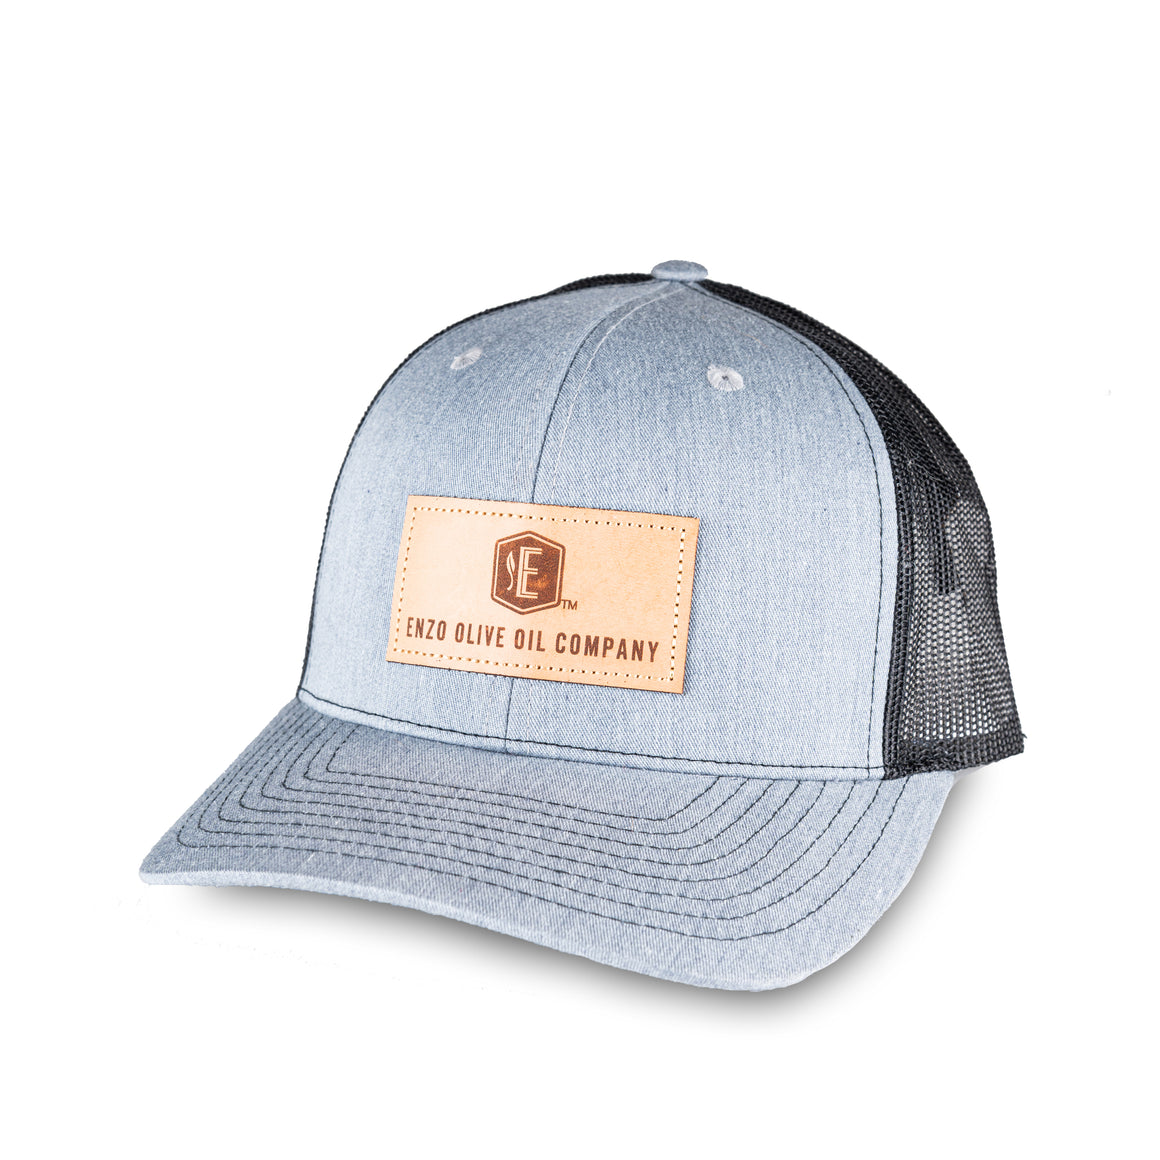 ENZO Olive Oil Company Hat